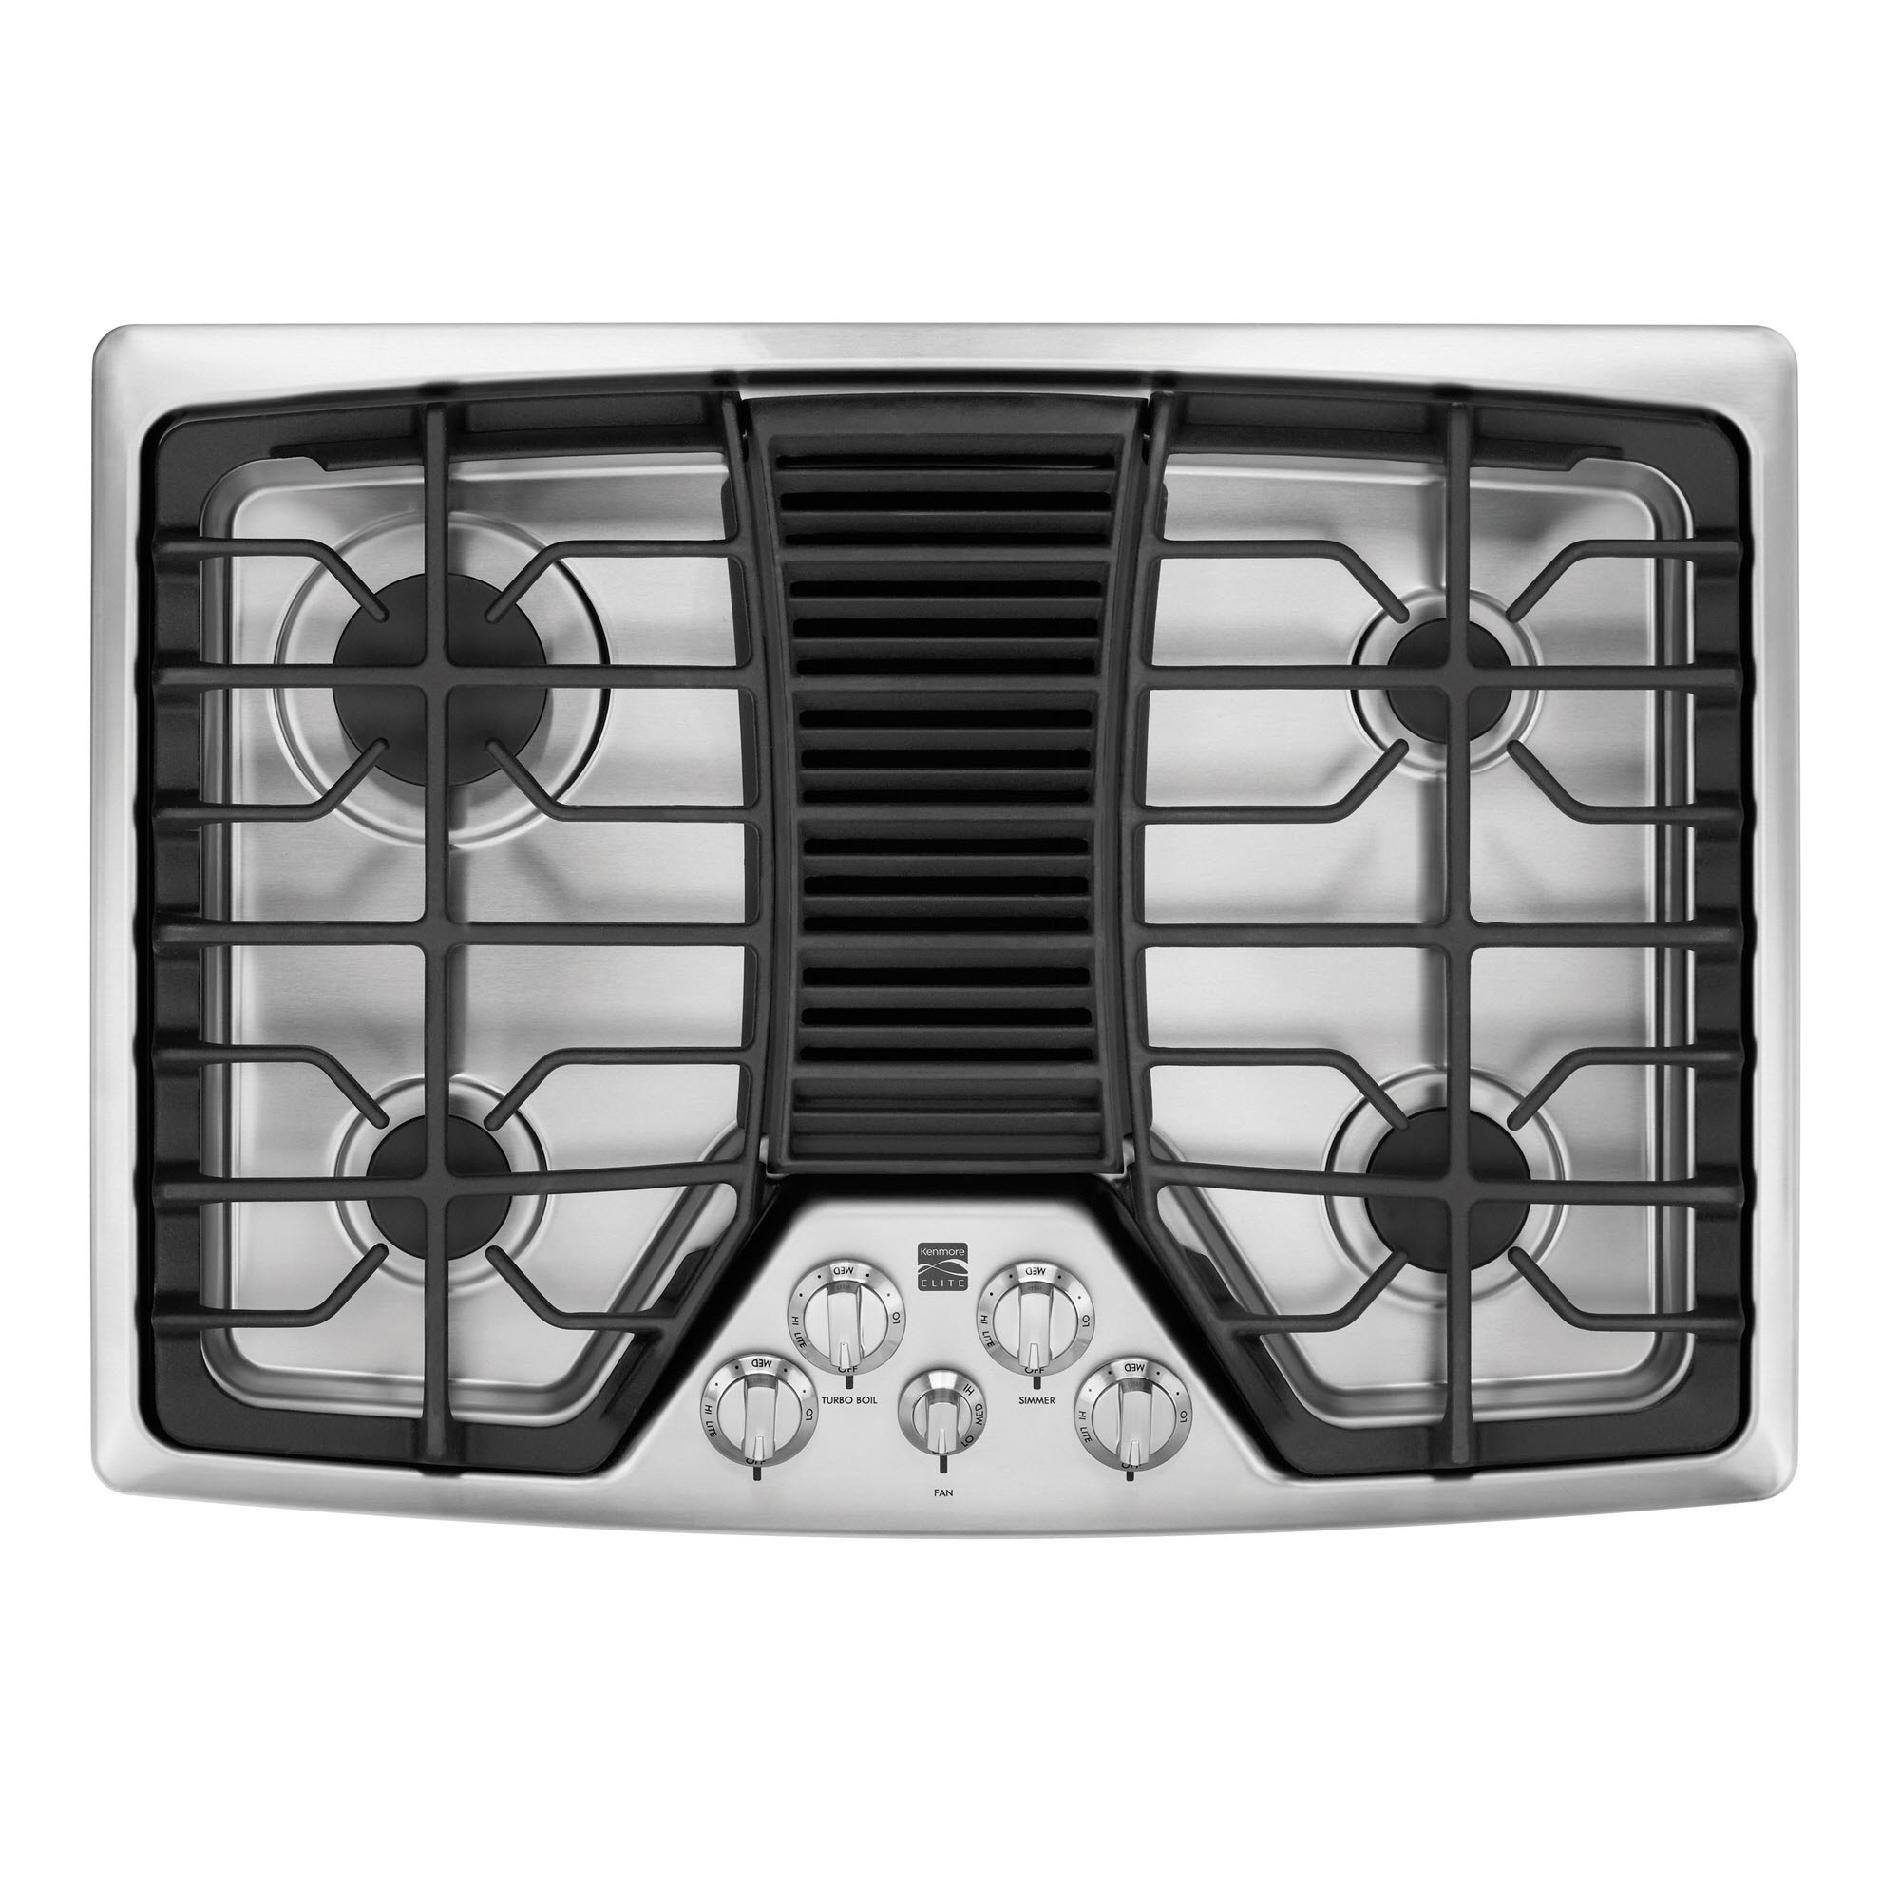 Natural Gas Cooktops With Downdraft